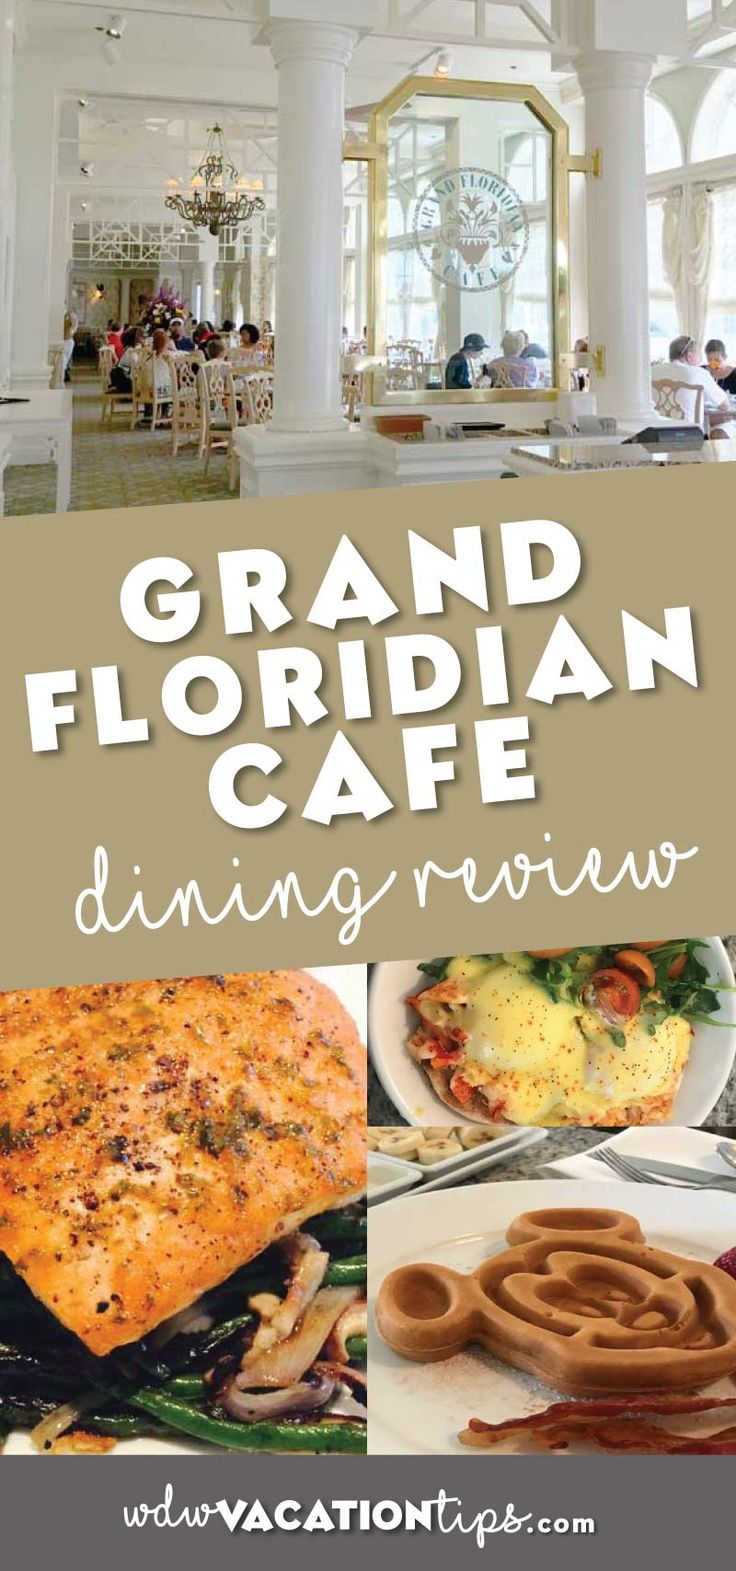 Dining review for the Grand Floridian Cafe at Walt Disney World. Get a look at the dishes and hear what we thought of the food.